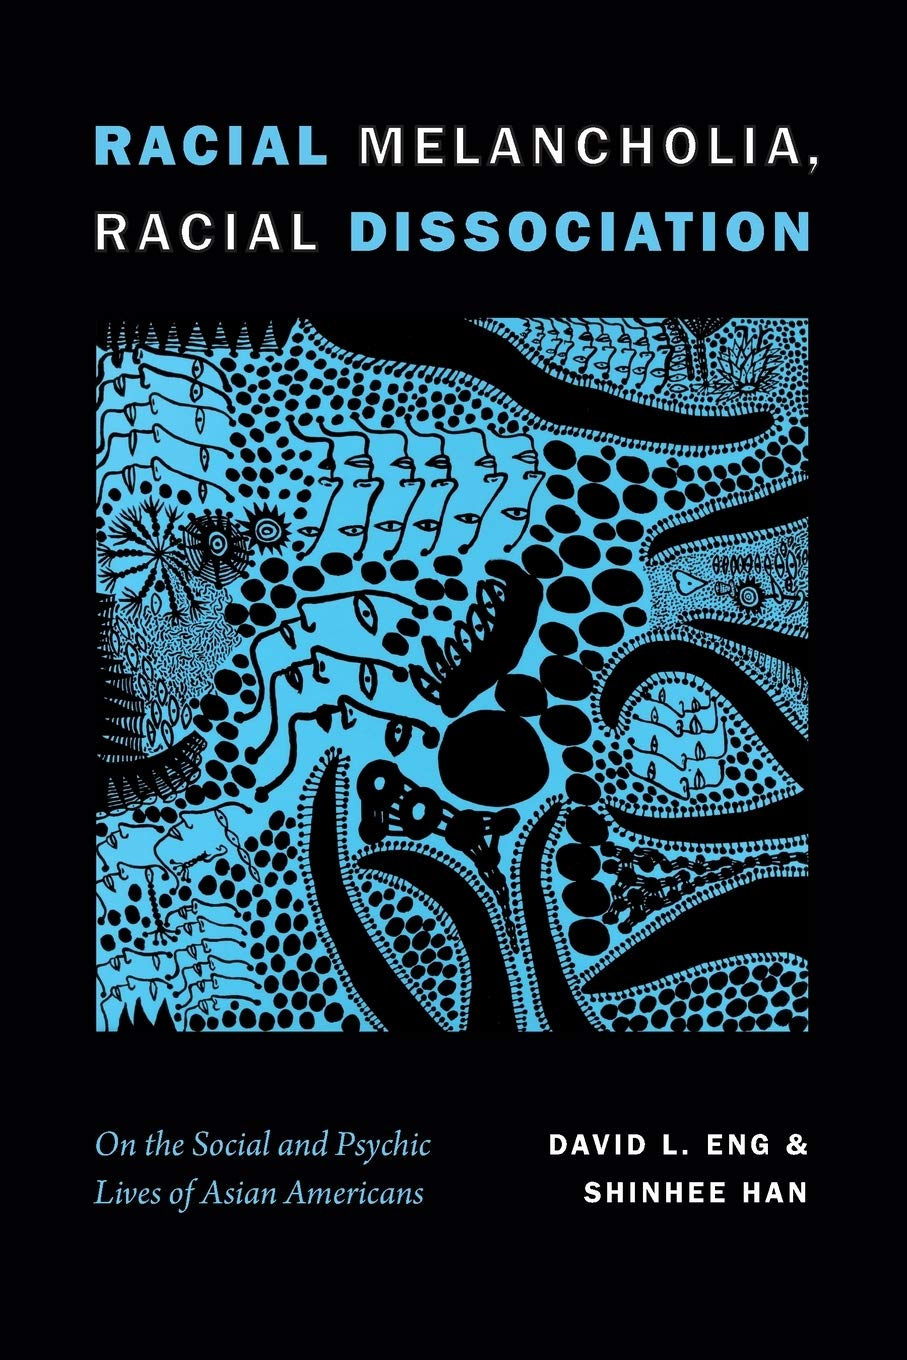 Image OfRacial Melancholia, Racial Dissociation: On The Social And Psychic Lives Of Asian Americans